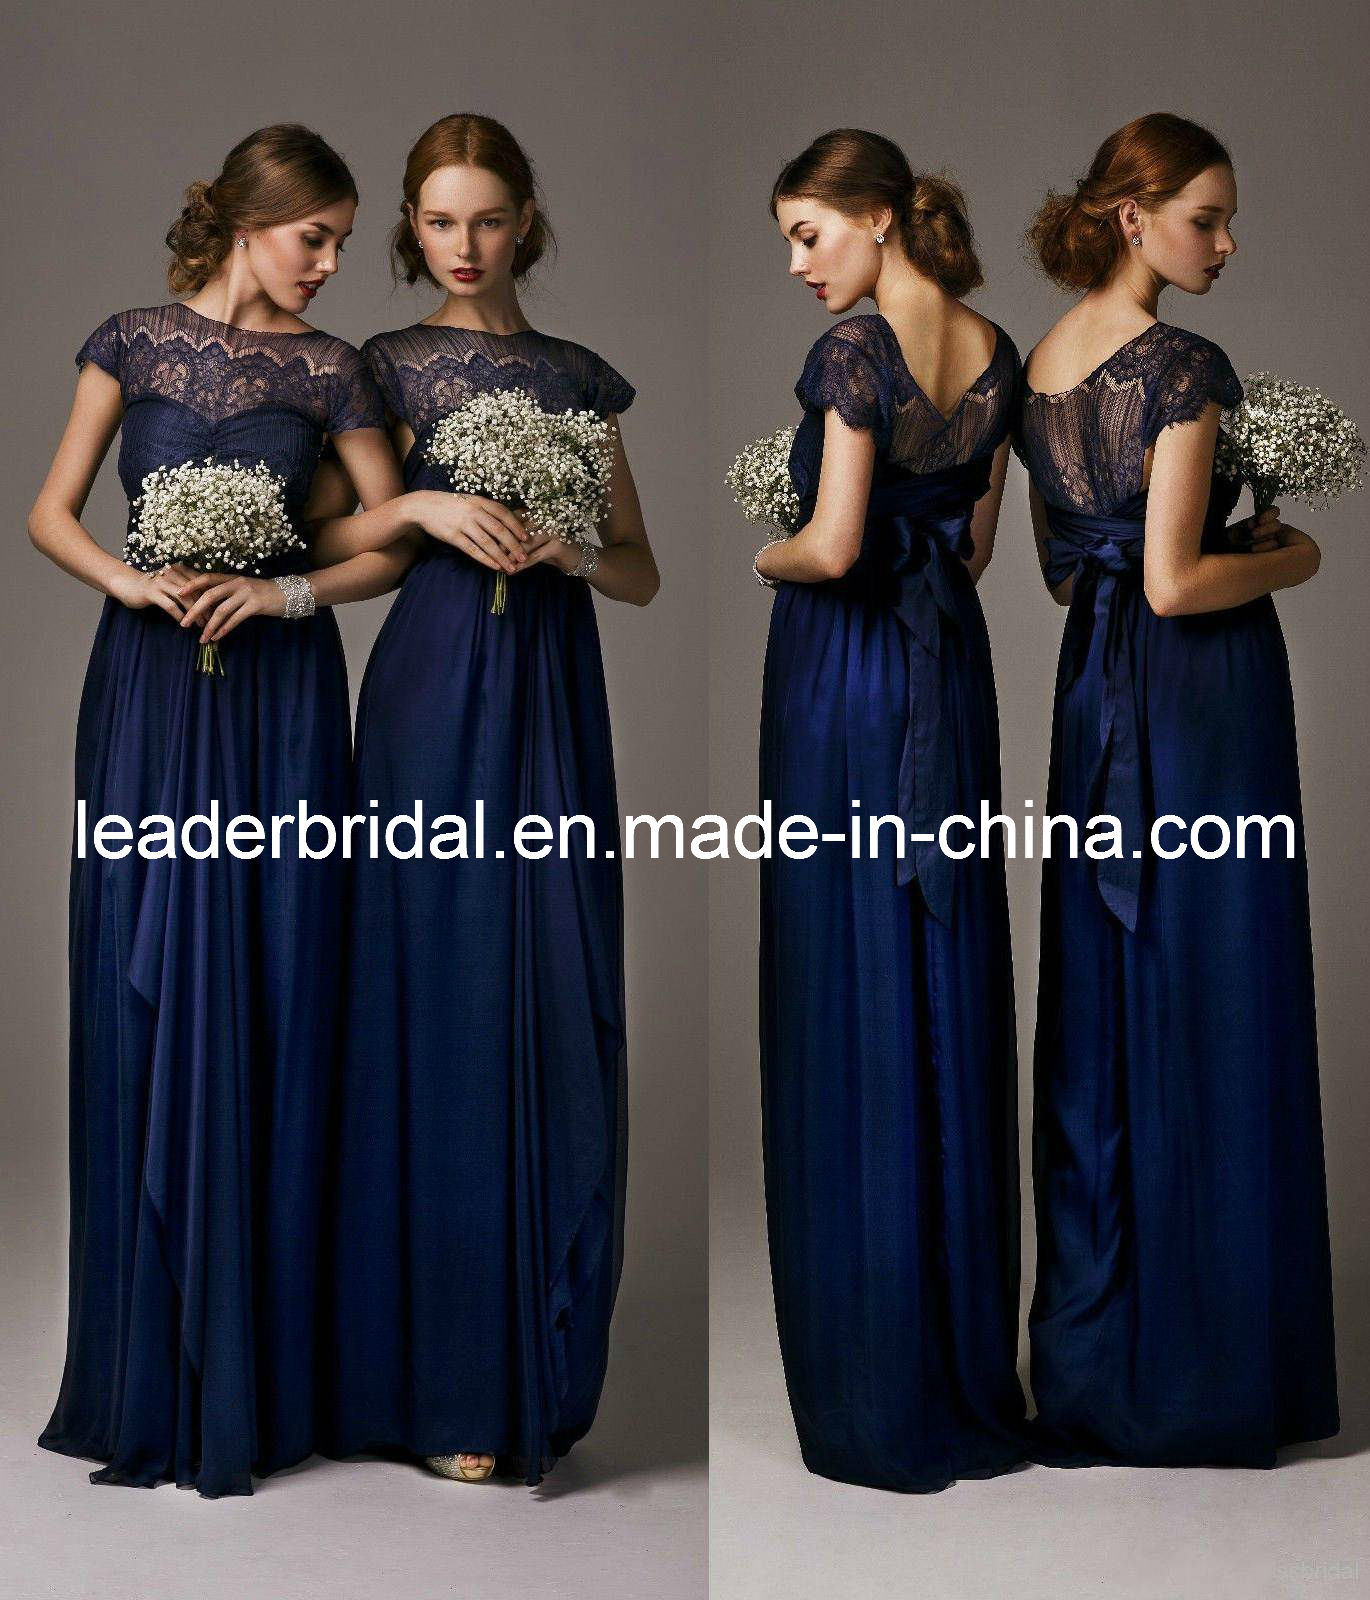 China new bridesmaid dresses navy blue lace chiffon empire for Navy blue dresses for wedding